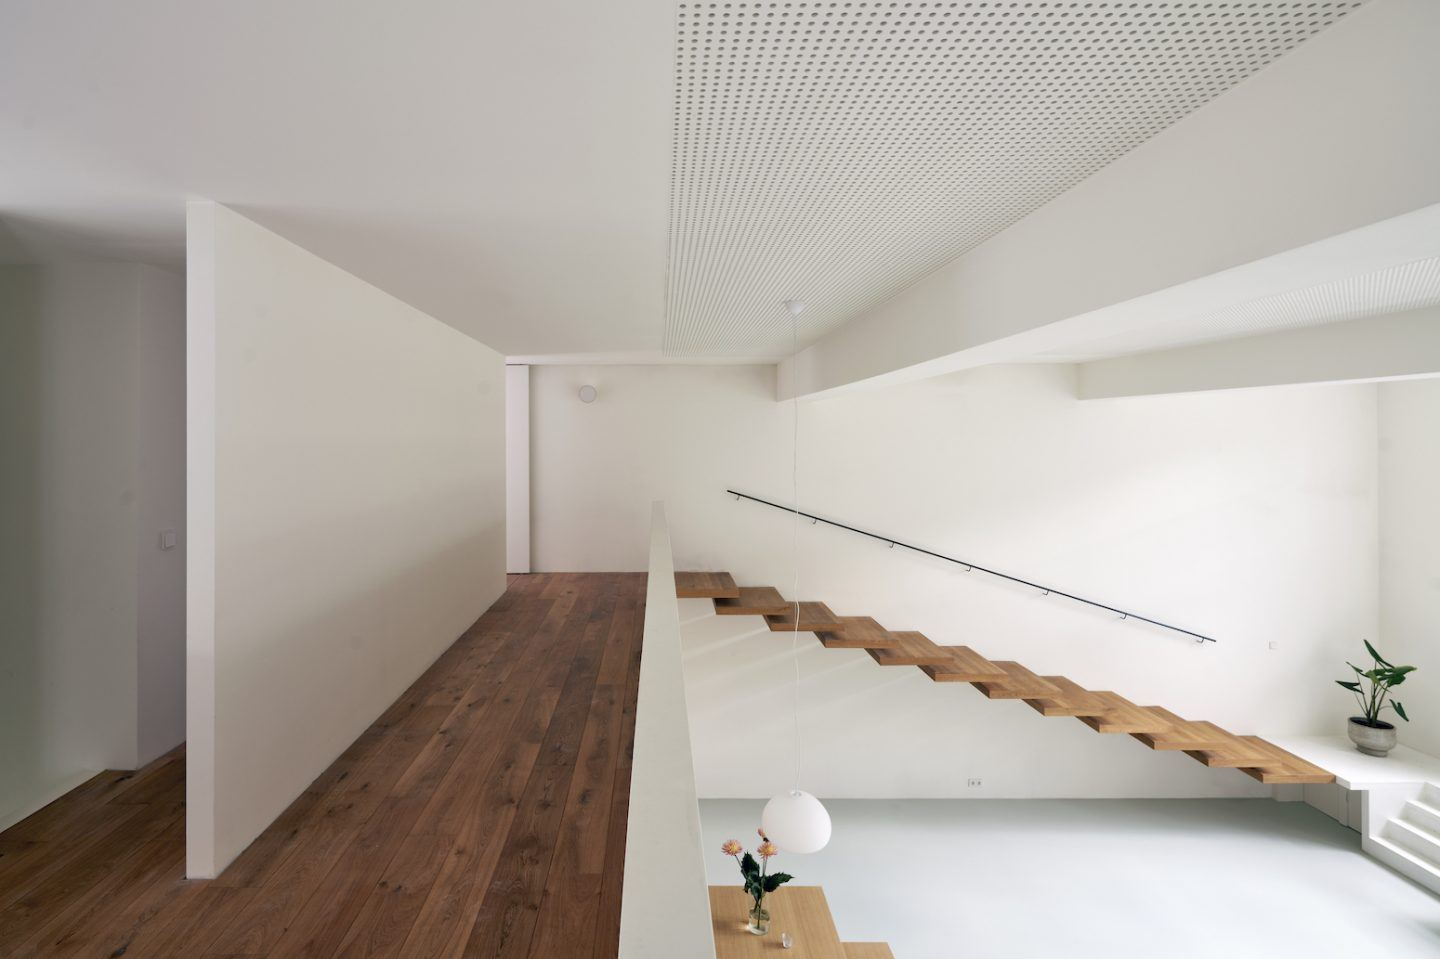 IGNANT-Architecture-Eklund-Terbeek-The-Gym-Loft-10